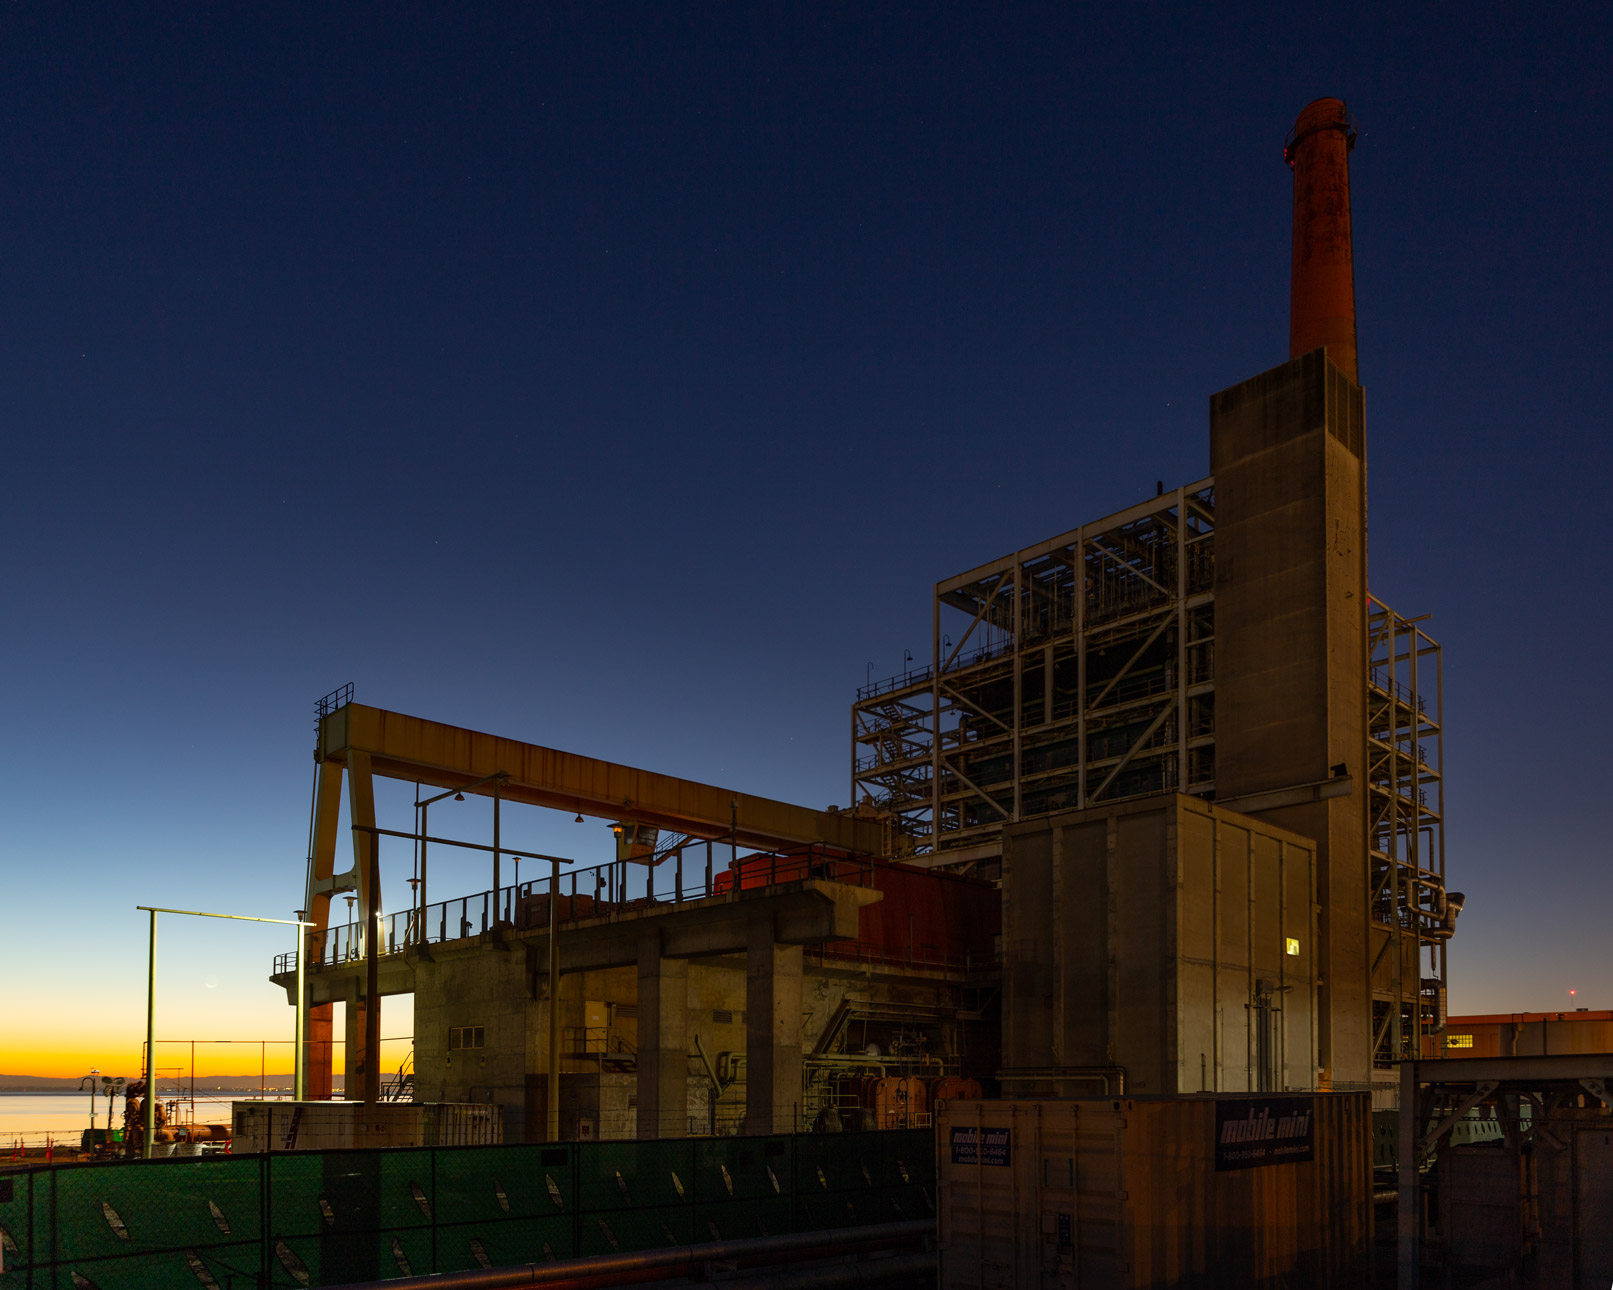 The Dogptach Power Station at Sunrise